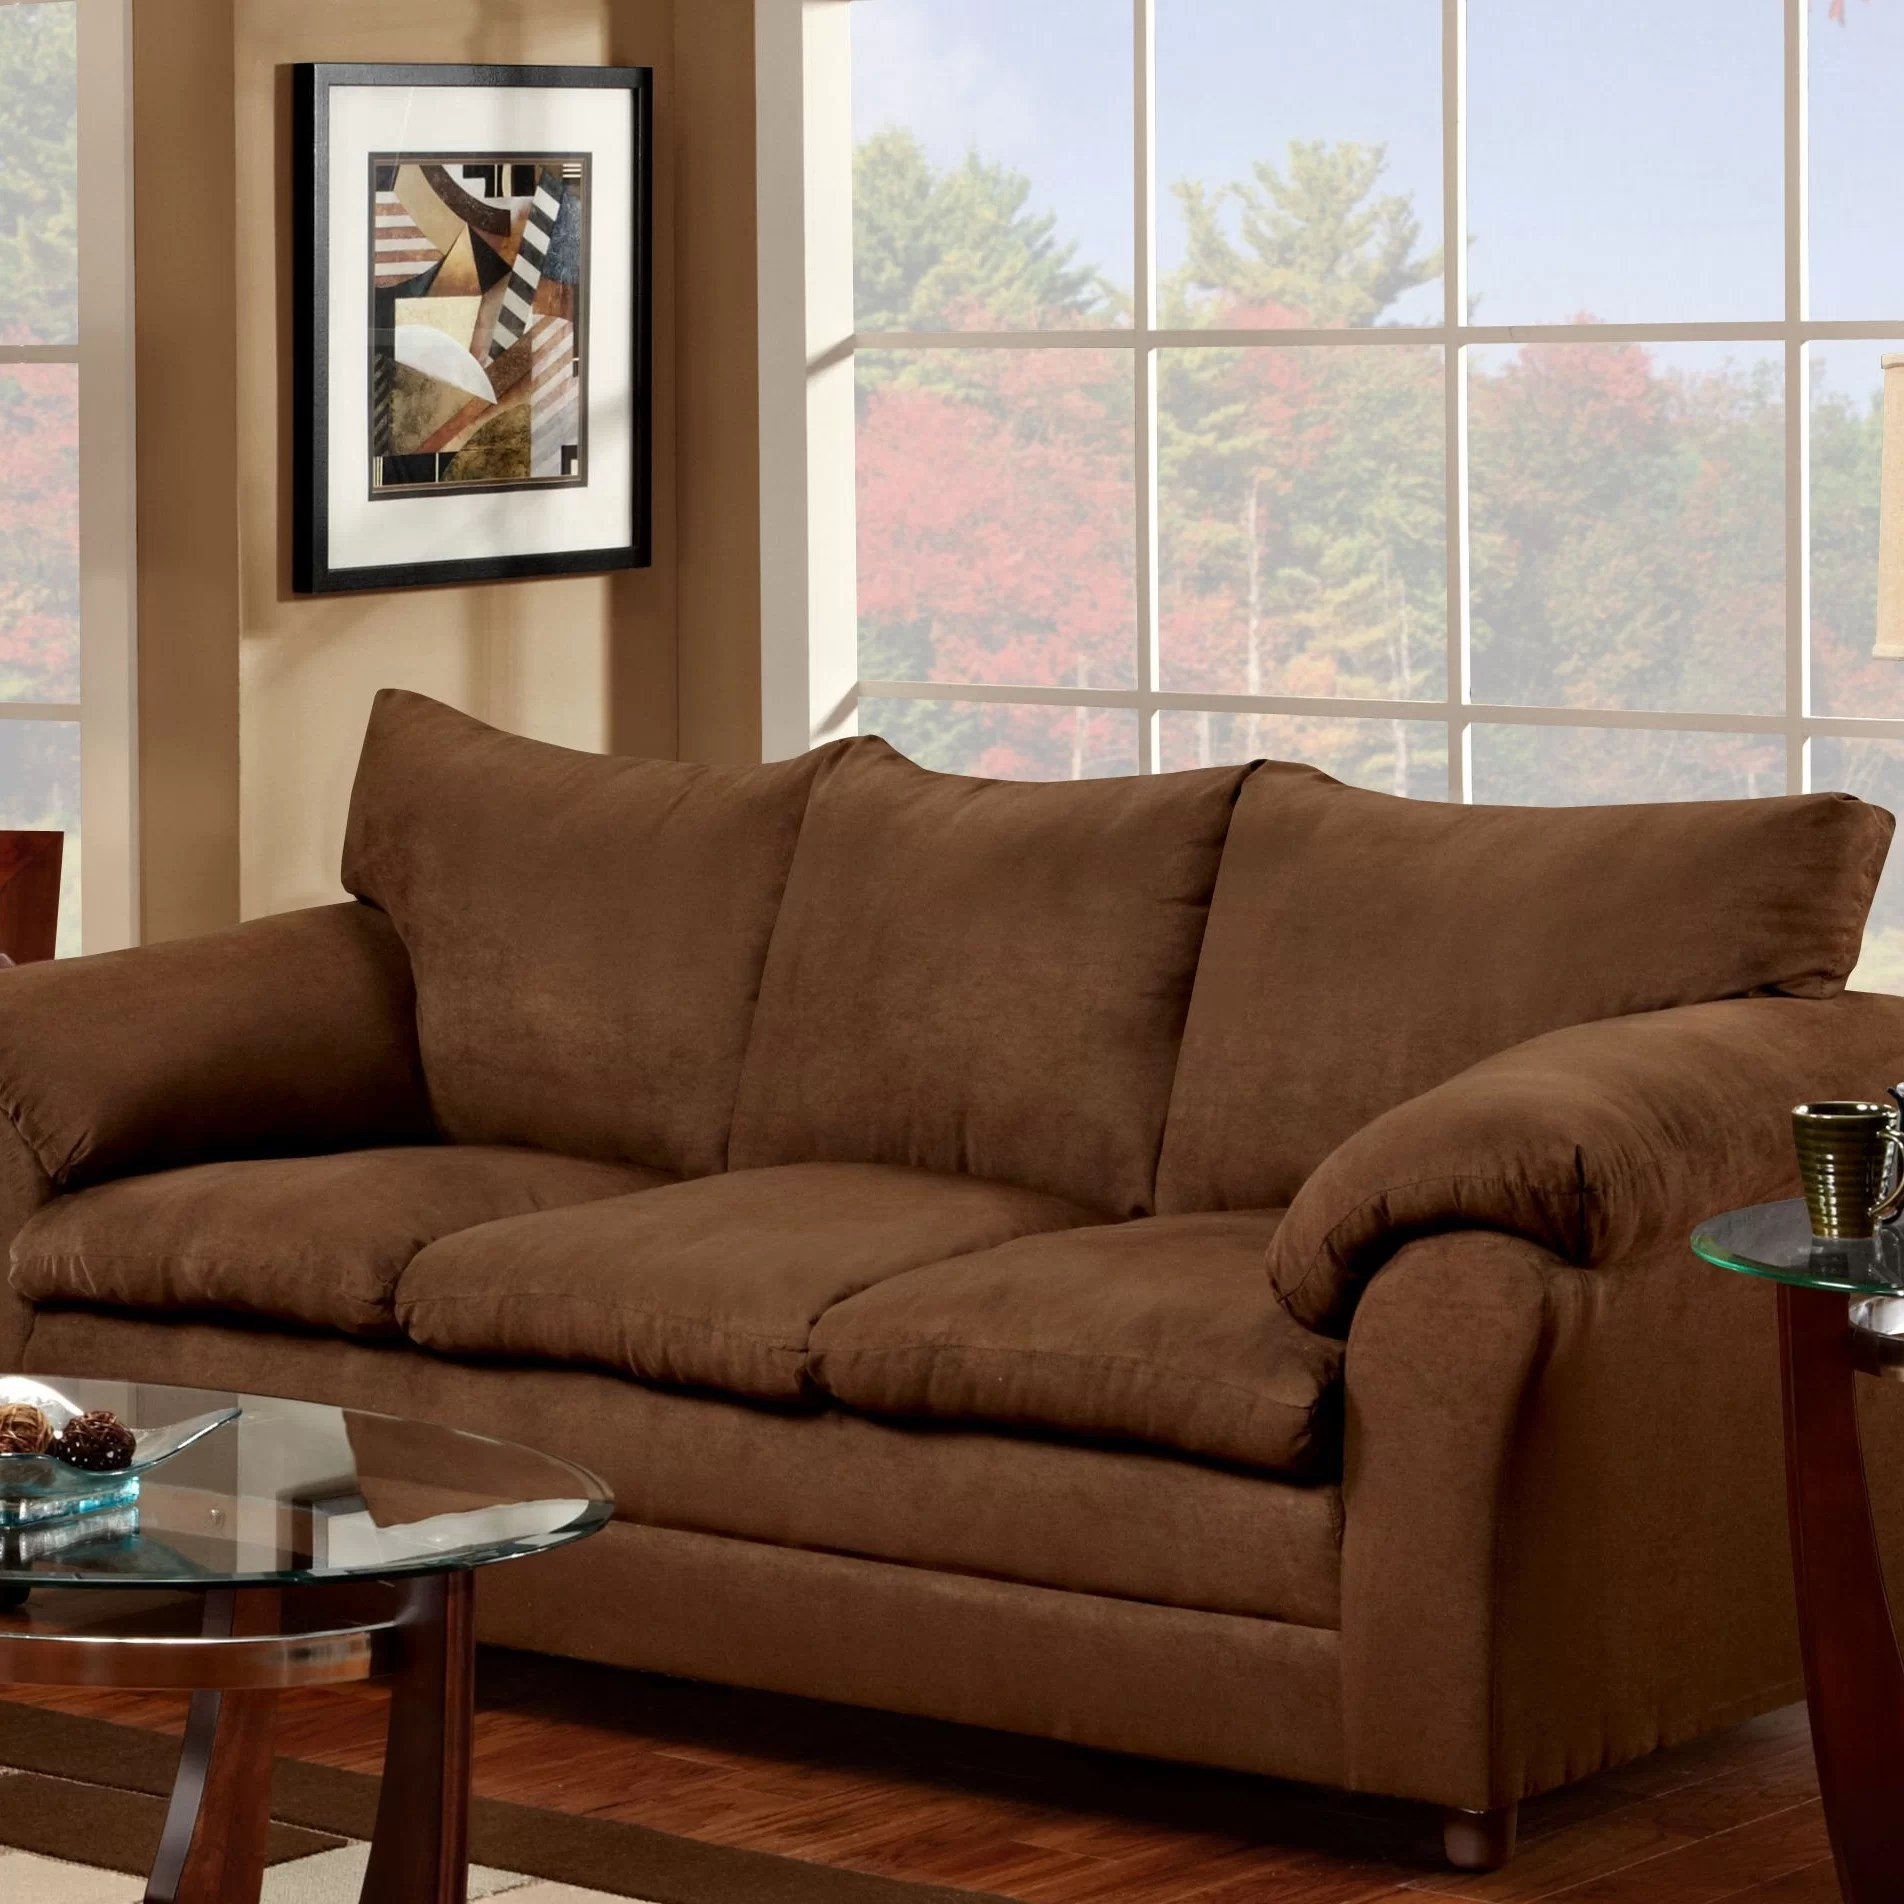 room and board chelsea sofa how to make easy slipcovers for home gail reviews wayfair